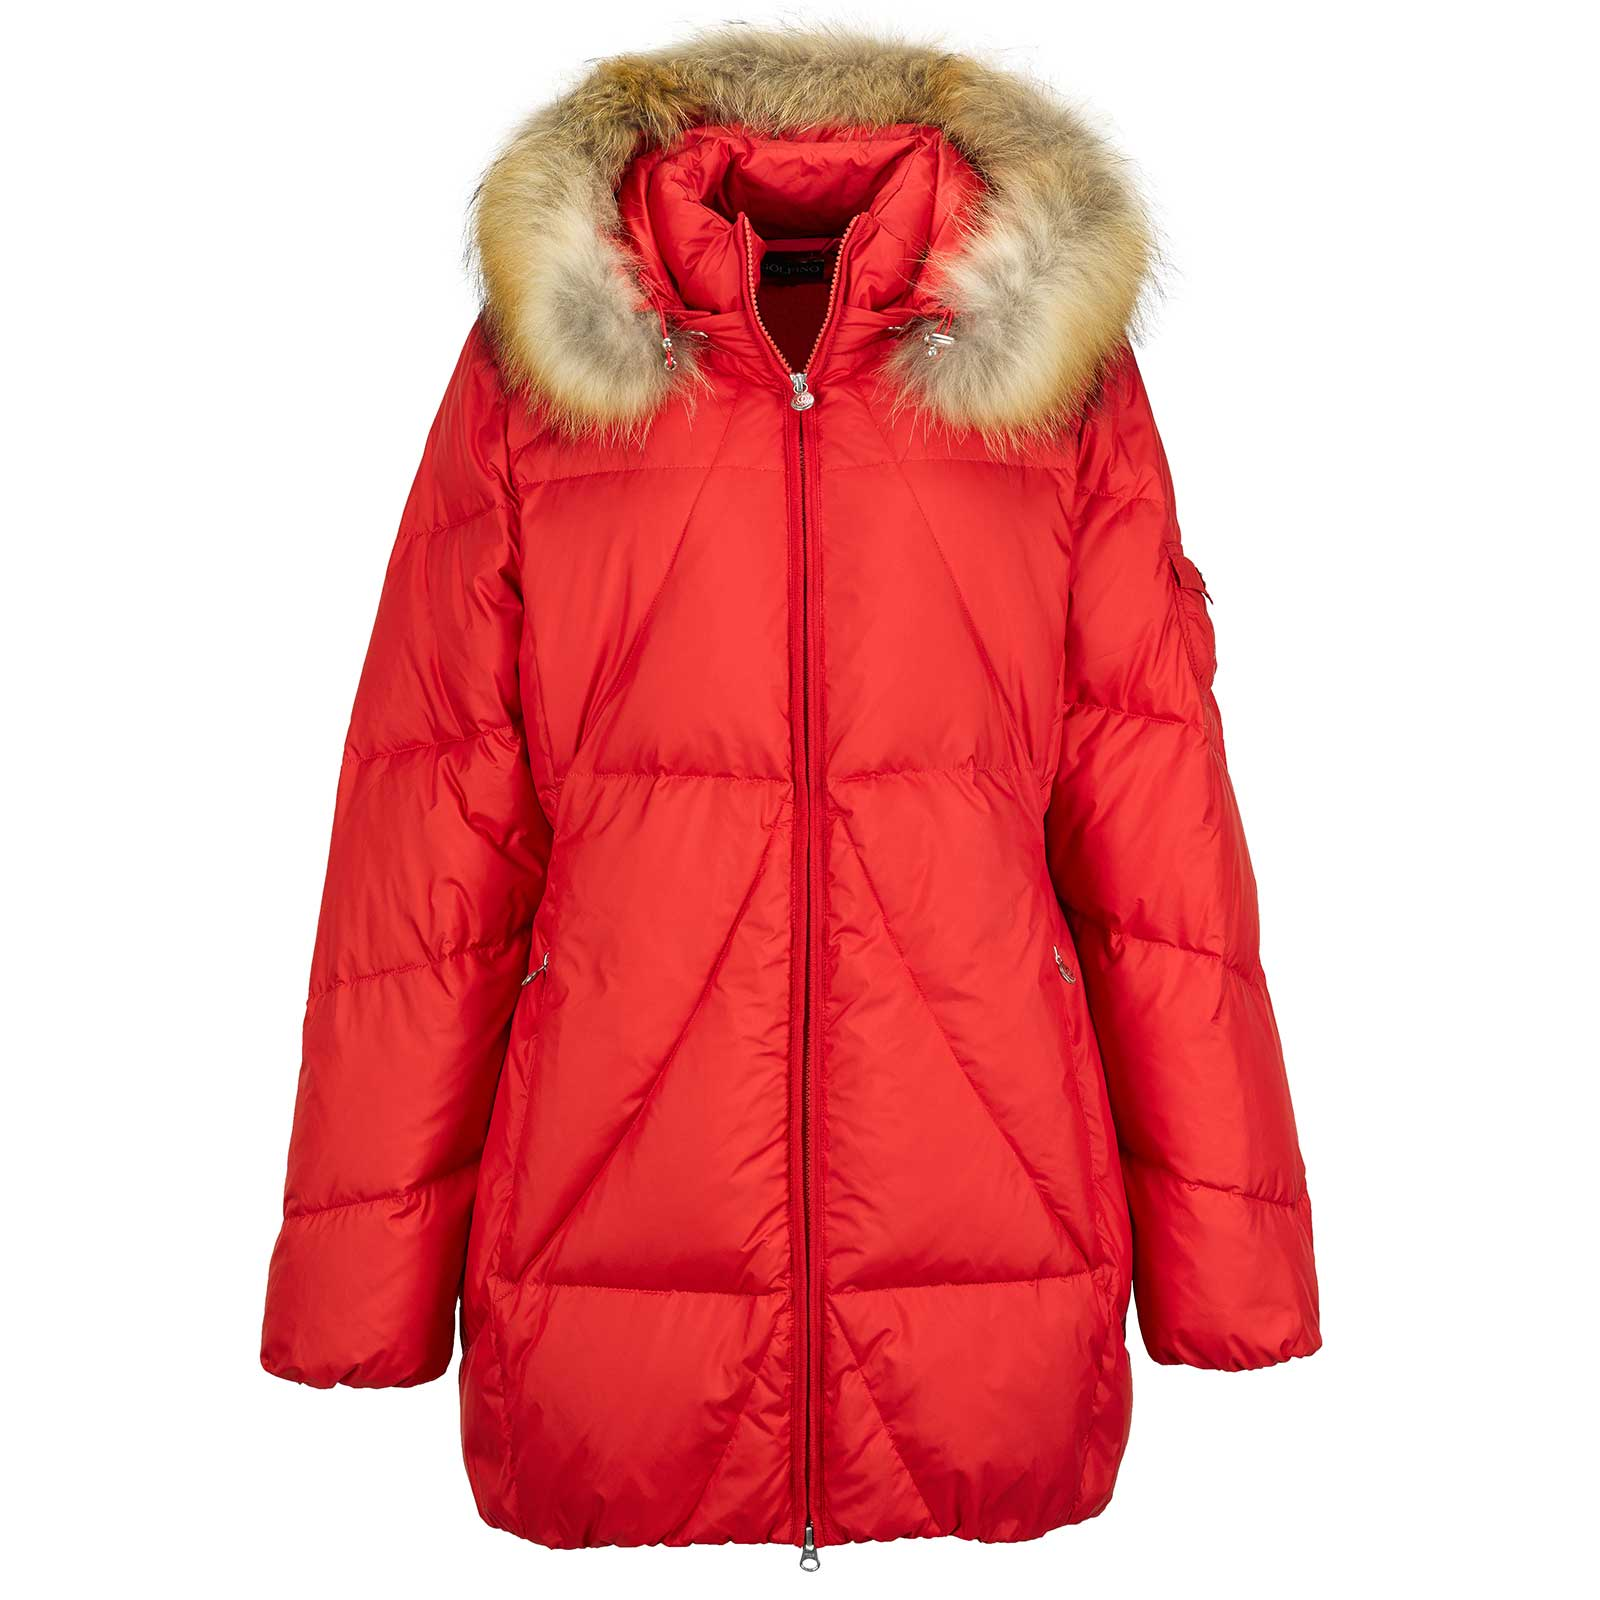 Ladies' padded jacket with down feather filling, real fur collar and longer fit